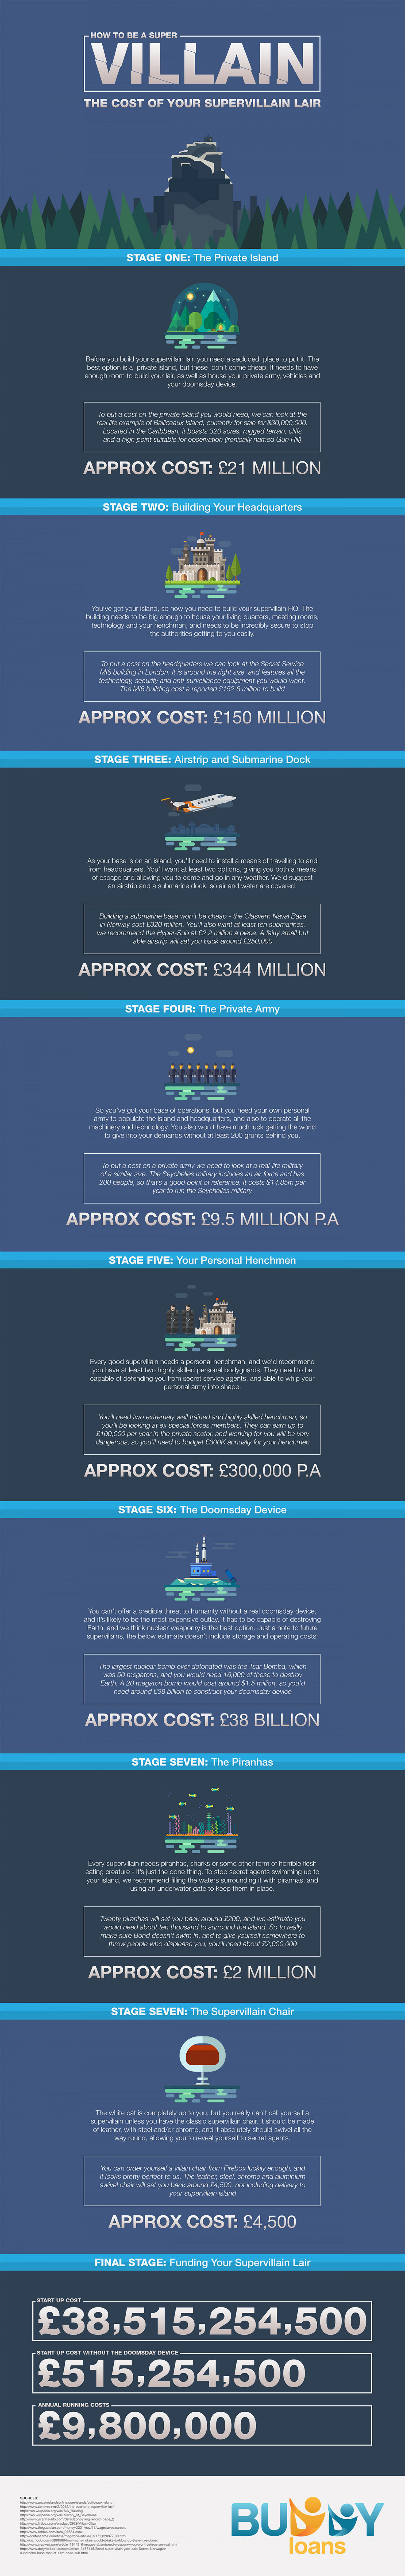 The Cost of a Supervillain Lair Infographic